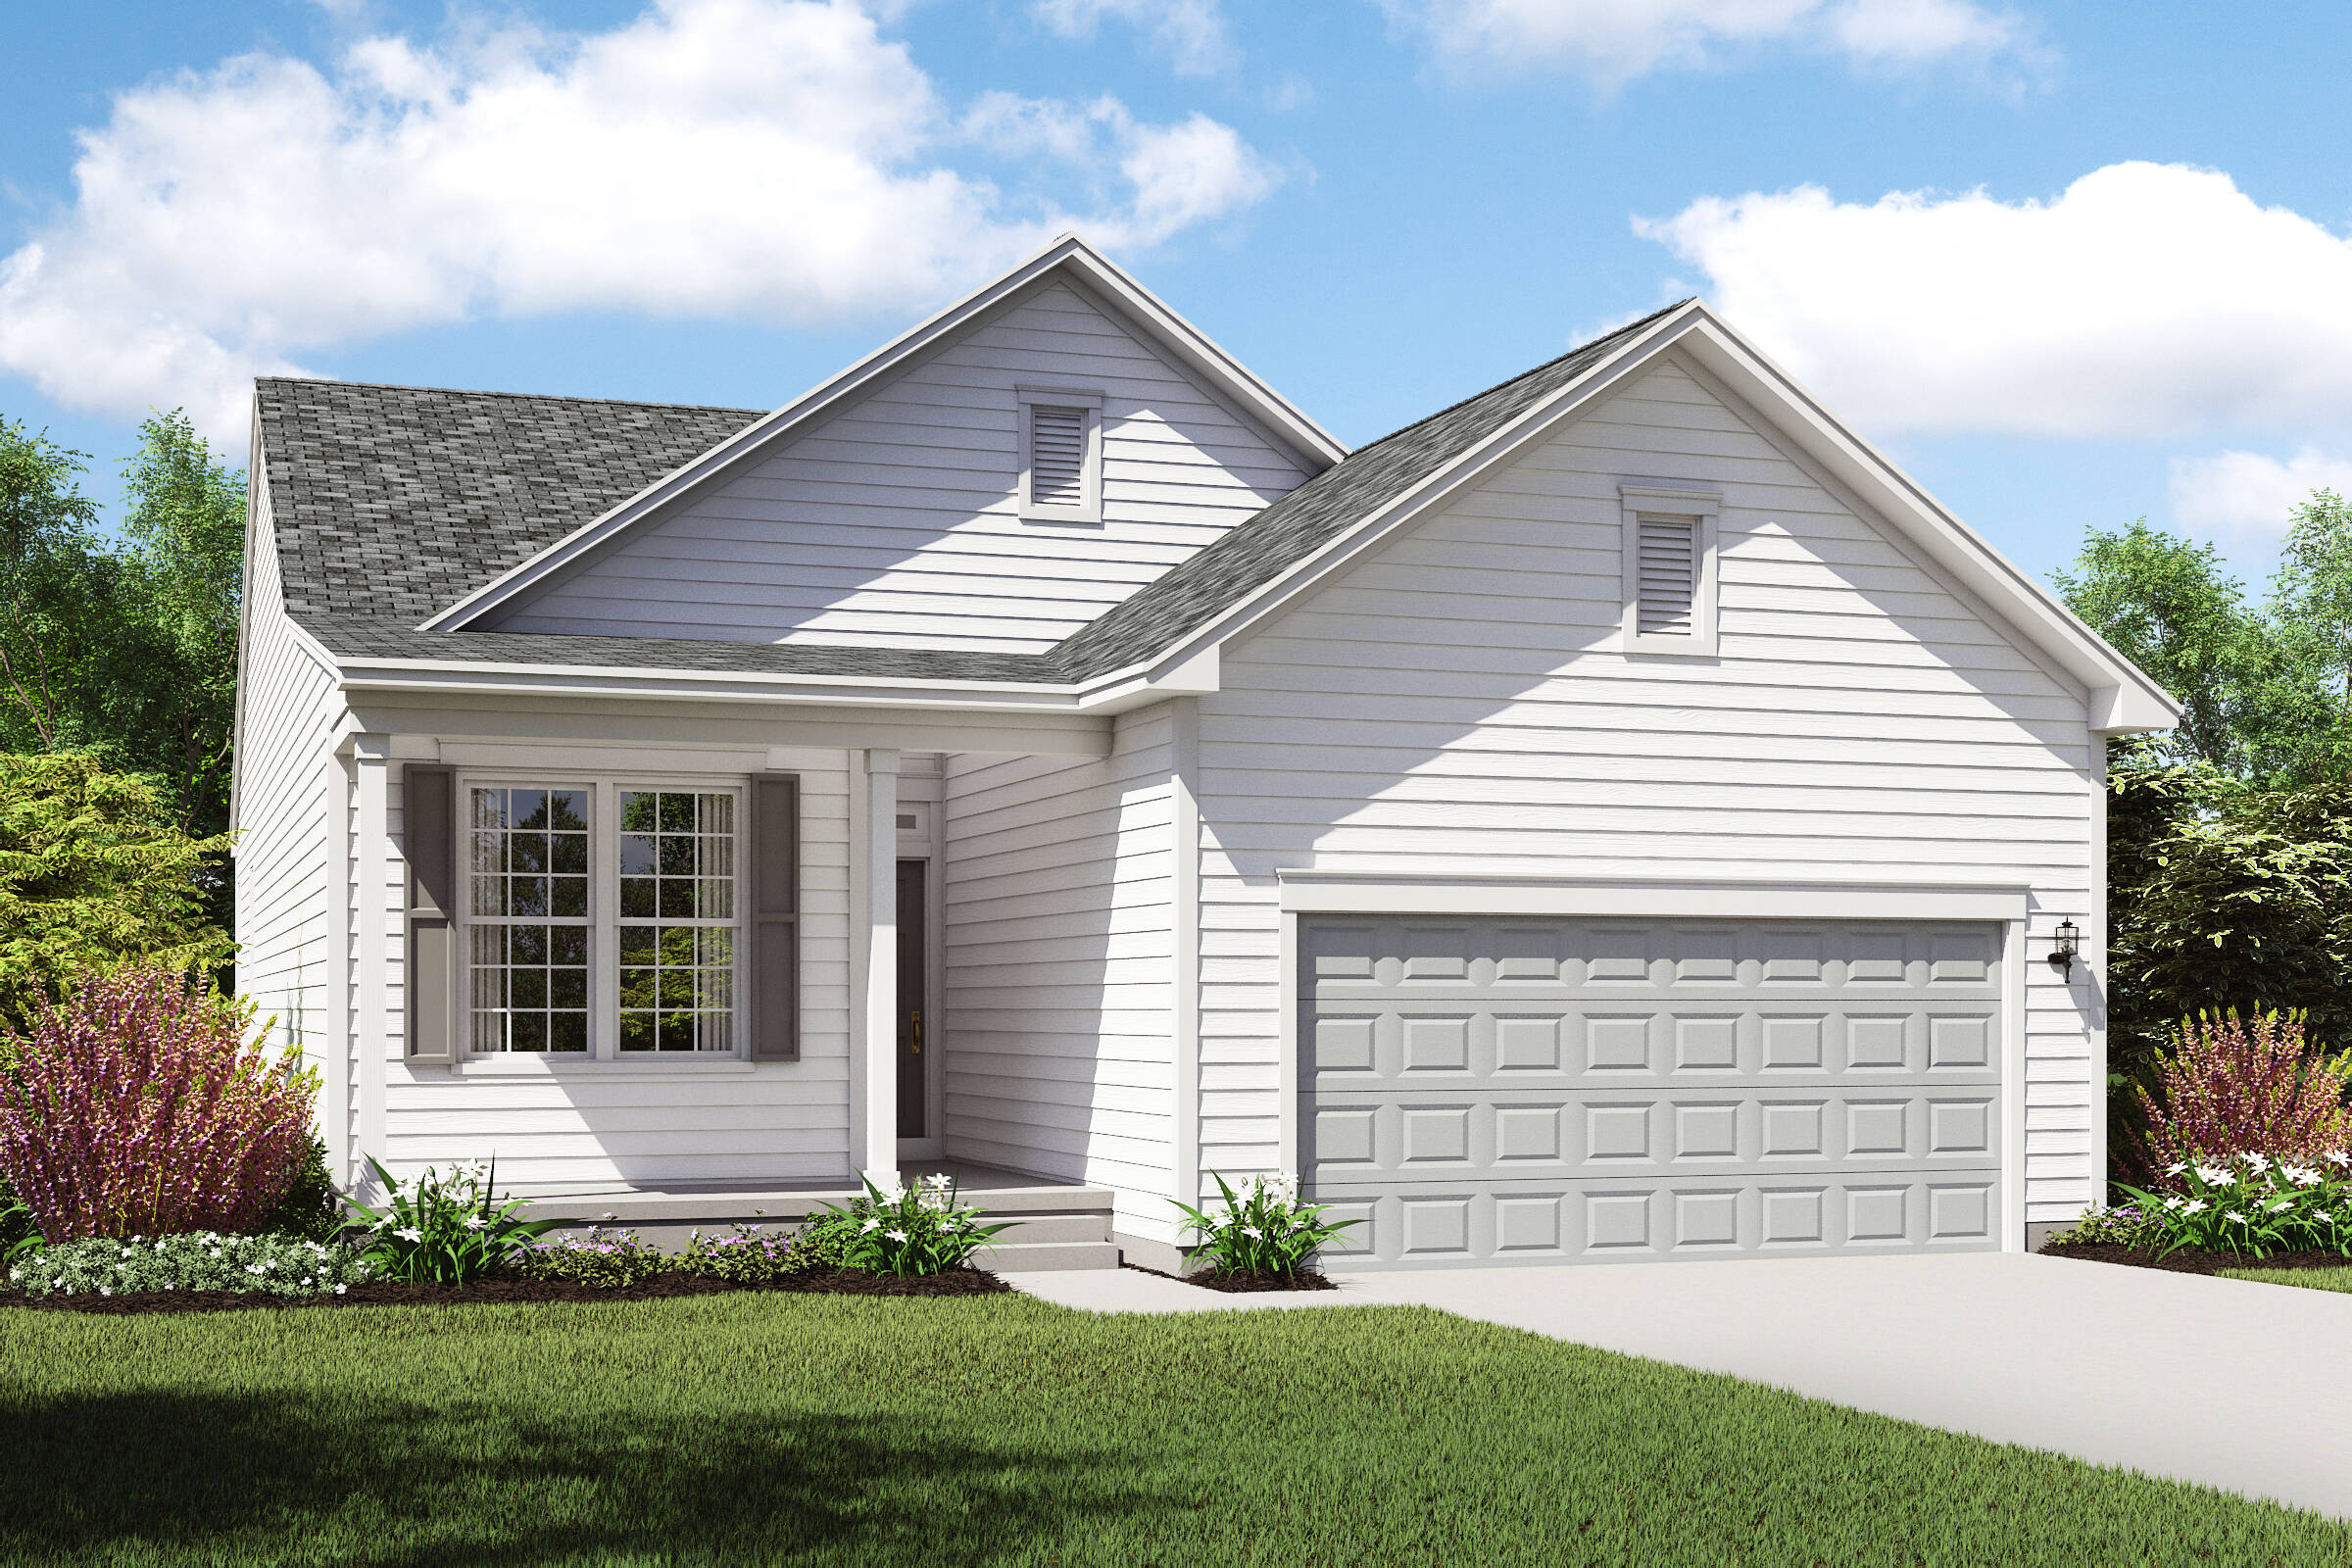 Genial Ranch Home Design New Homes Capri 2 C Lorain Ohio Find New Homes In  Cleveland East OH K Hovnanian